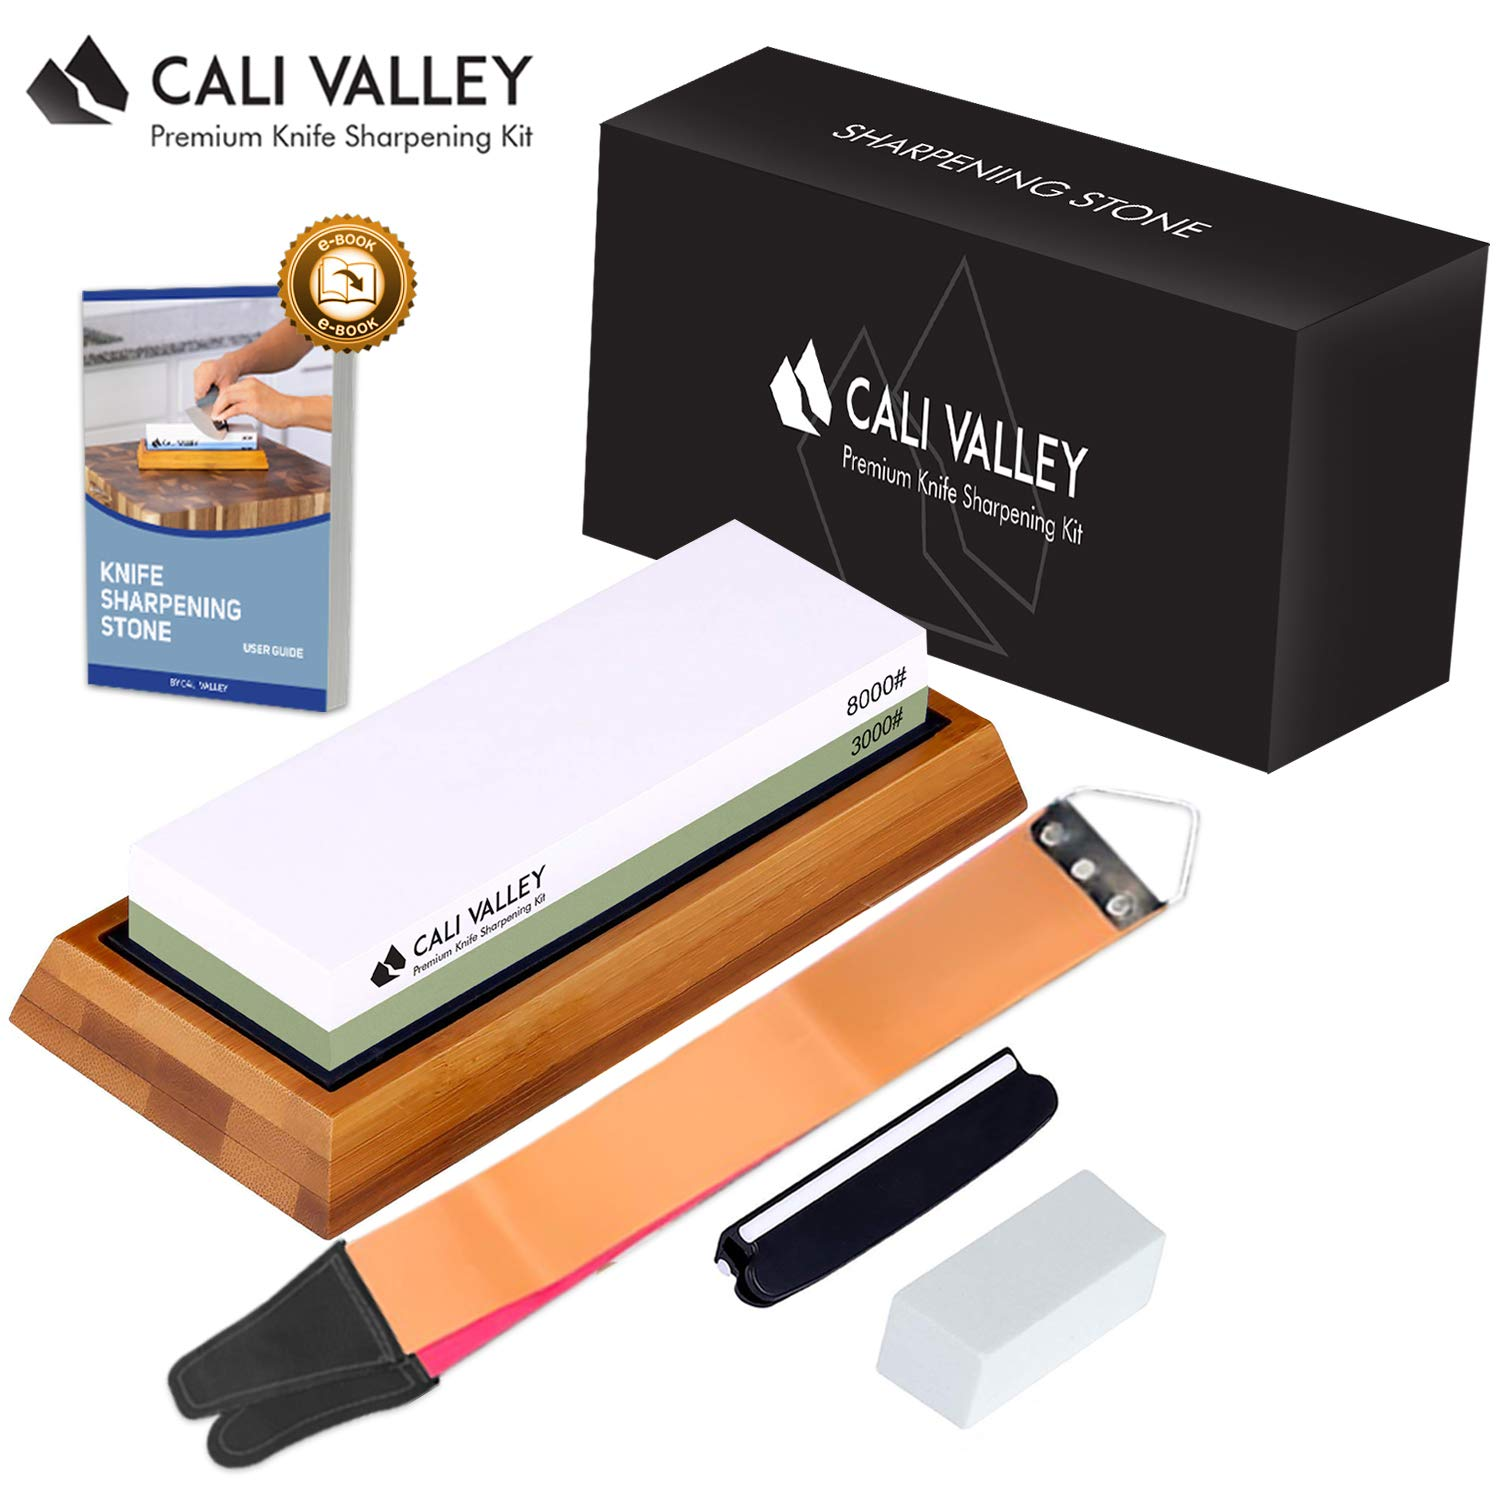 Cali Valley Whetstone 3000 8000 - Premium Professional Knife Sharpening Stone - Best Knife Sharpening Kit with Angle Guide, Flattening Stone & Leather Strop